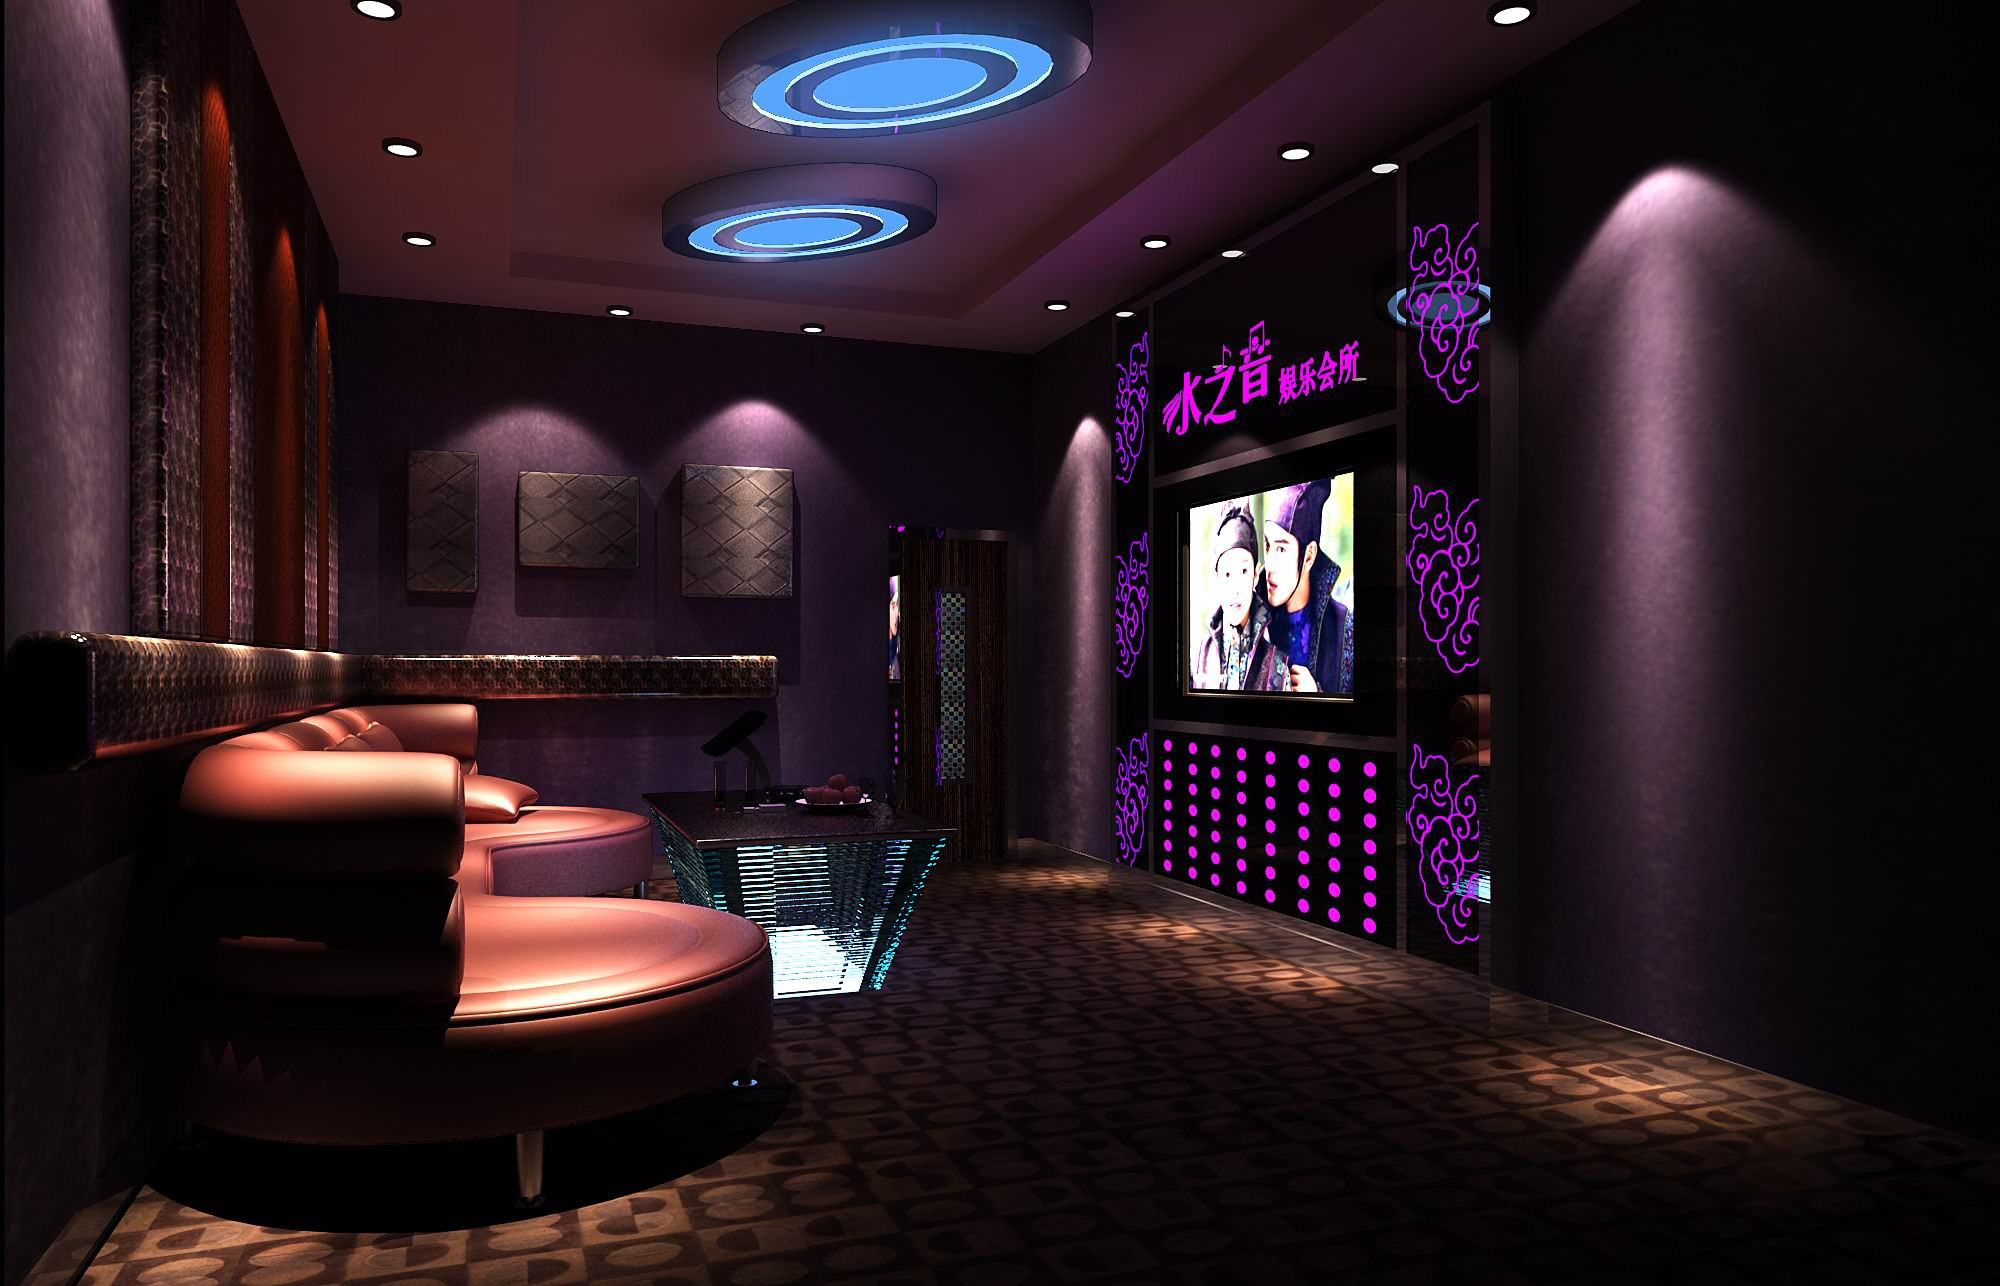 Luxurious Restaurant Vip Lounge With Tv on architectural design programs